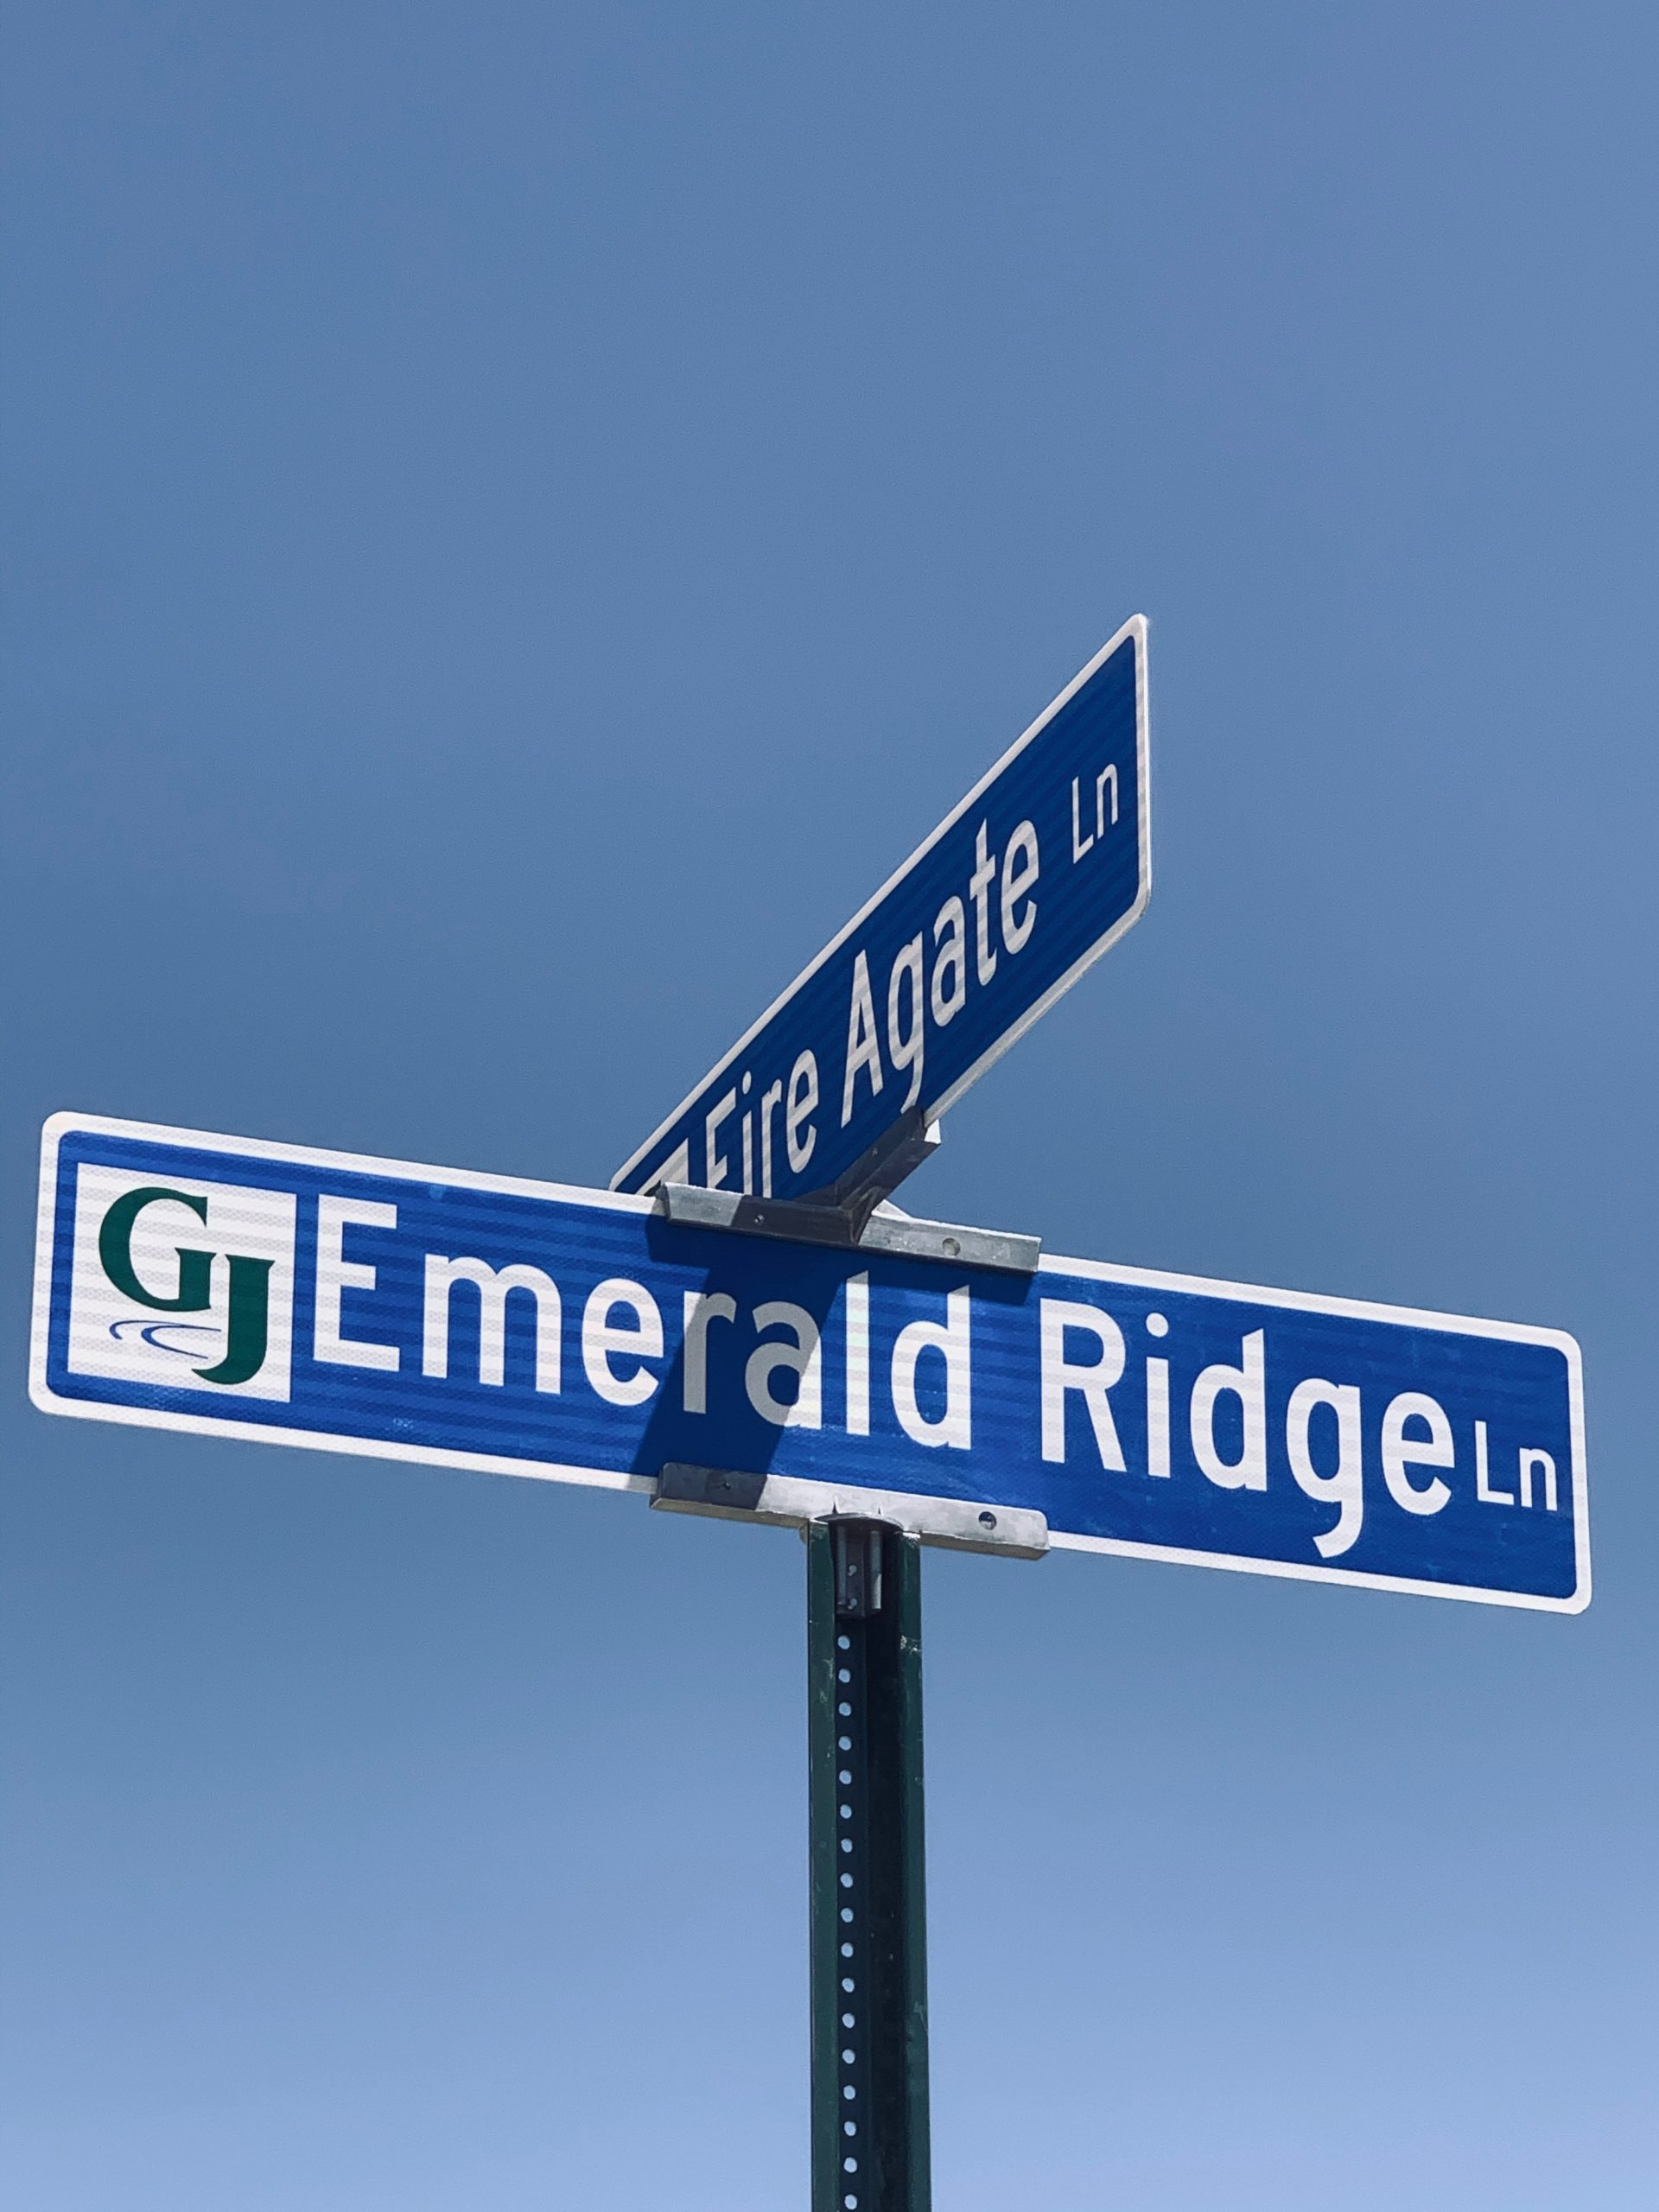 Emerald Ridge Lane and Fire Agate Lane now have street signs!